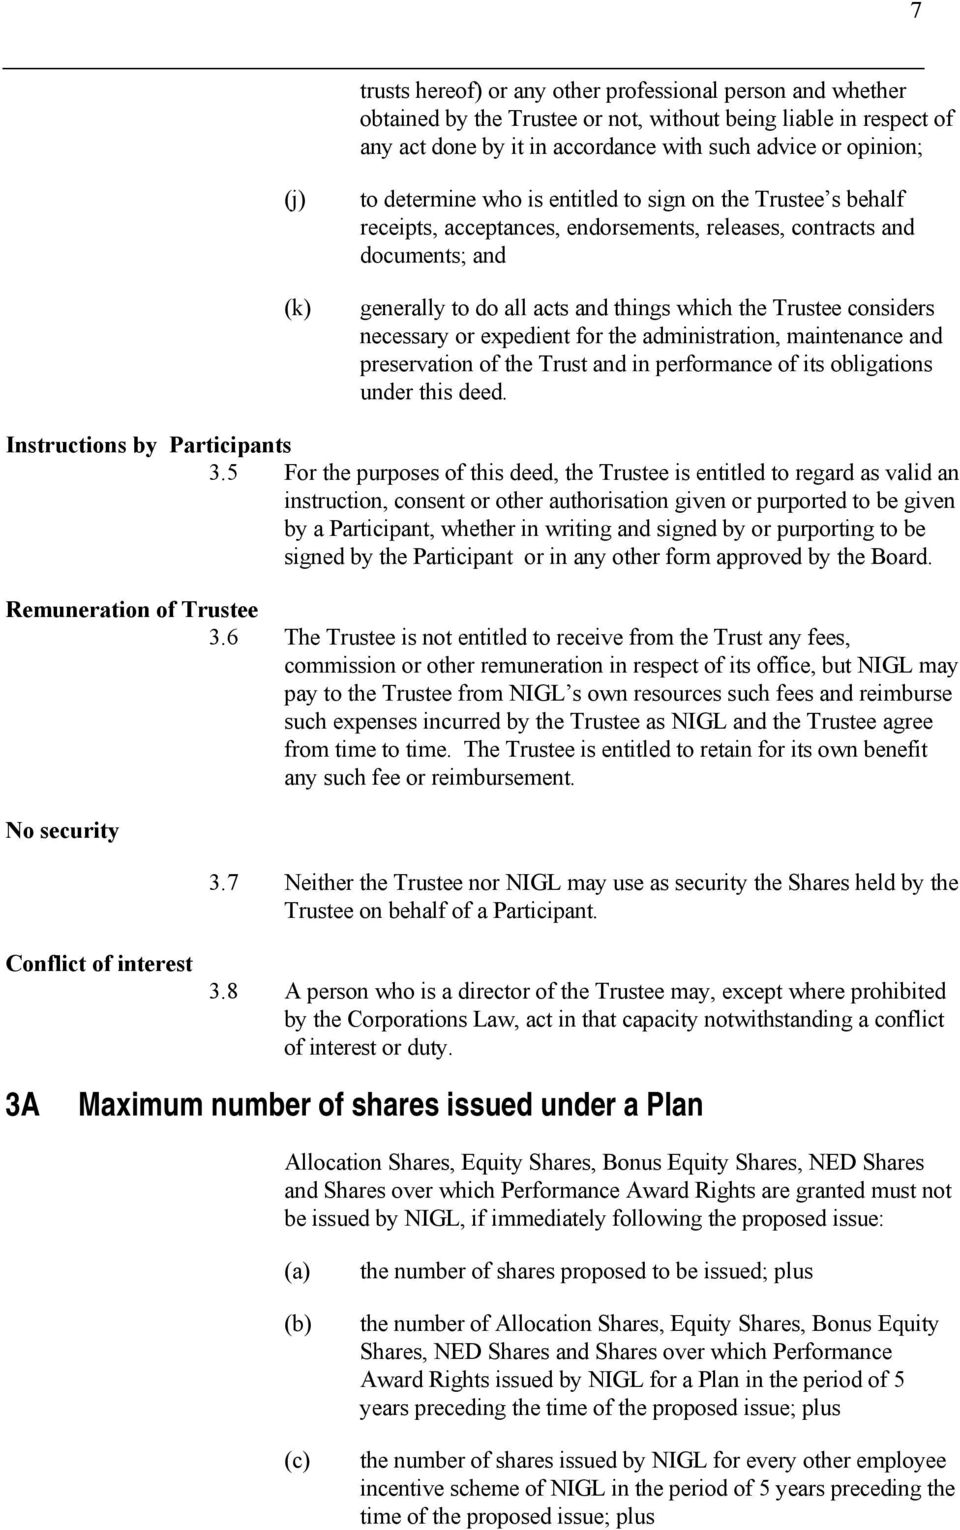 considers necessary or expedient for the administration, maintenance and preservation of the Trust and in performance of its obligations under this deed. Instructions by Participants 3.